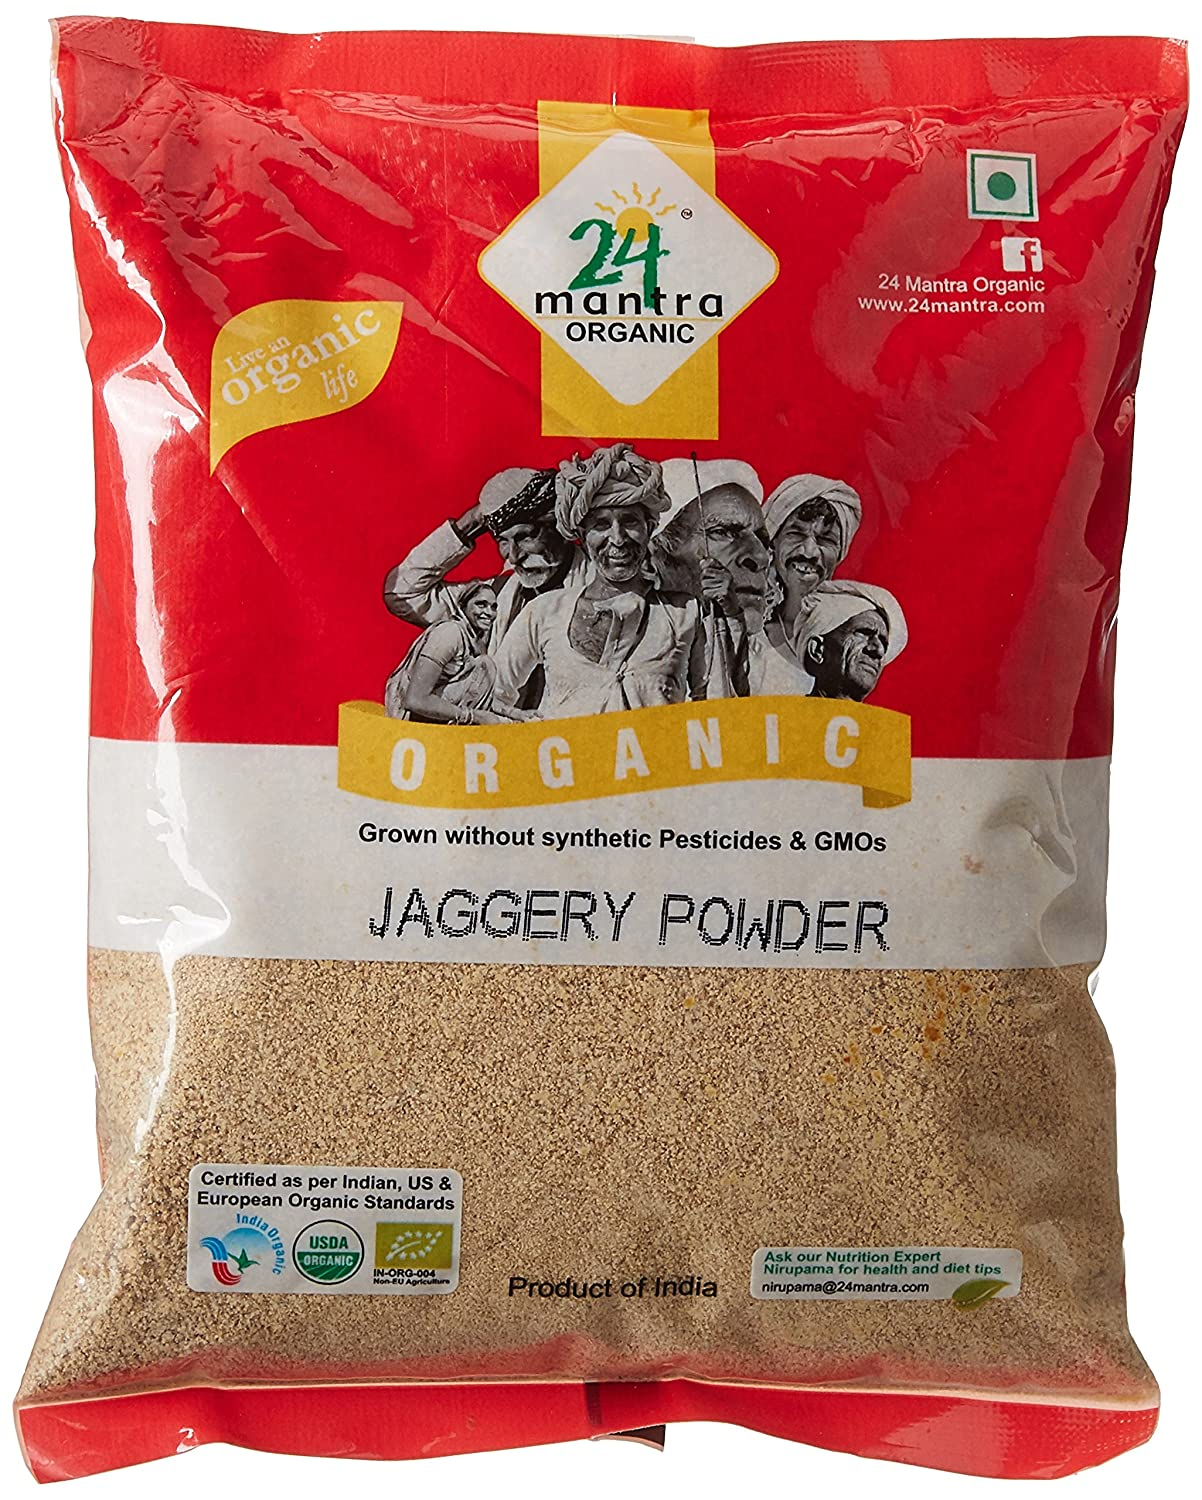 24 Mantra Organic Products Jaggery Powder, 500g By Amazon  Rs.74